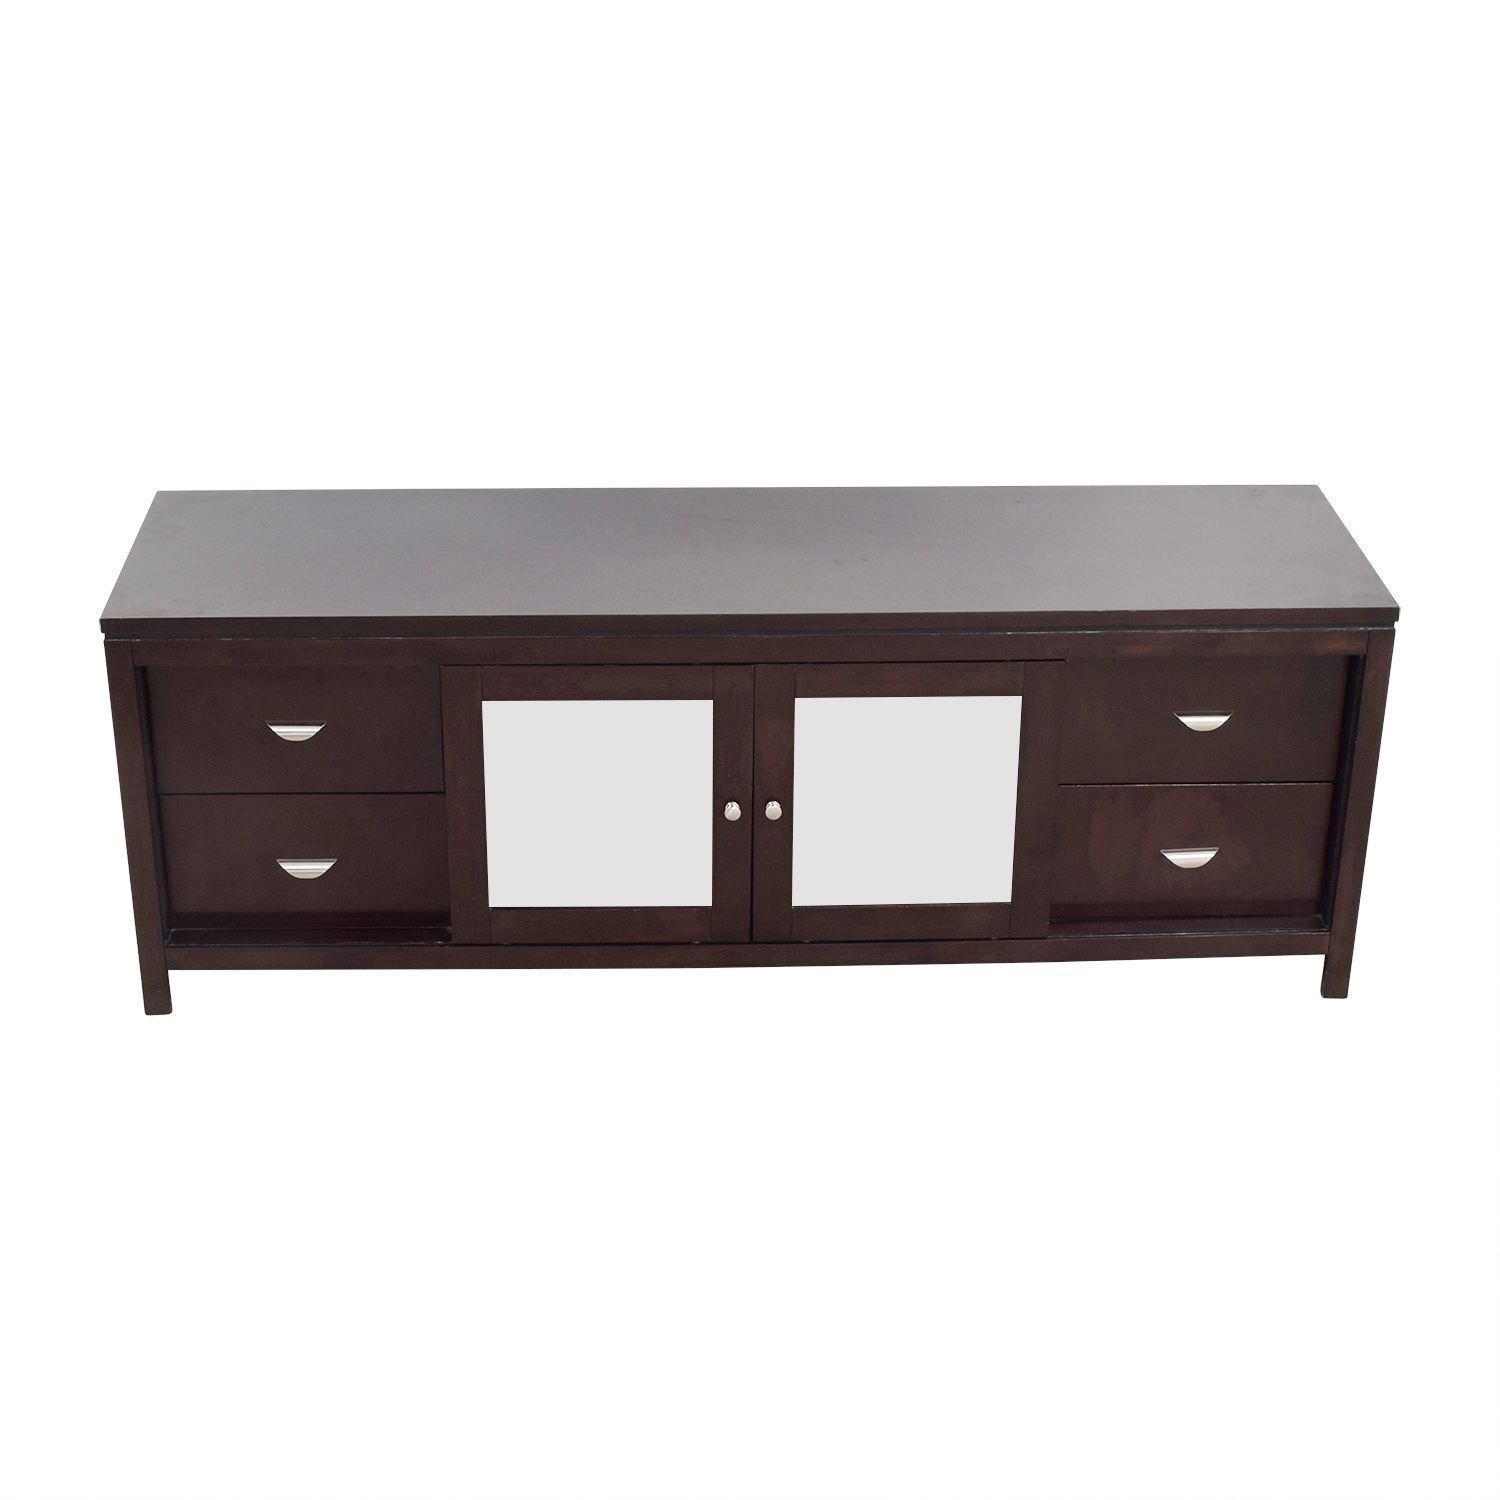 Abbyson Clarkston Abbyson Clarkston Wood & Glass TV Console Mahogany